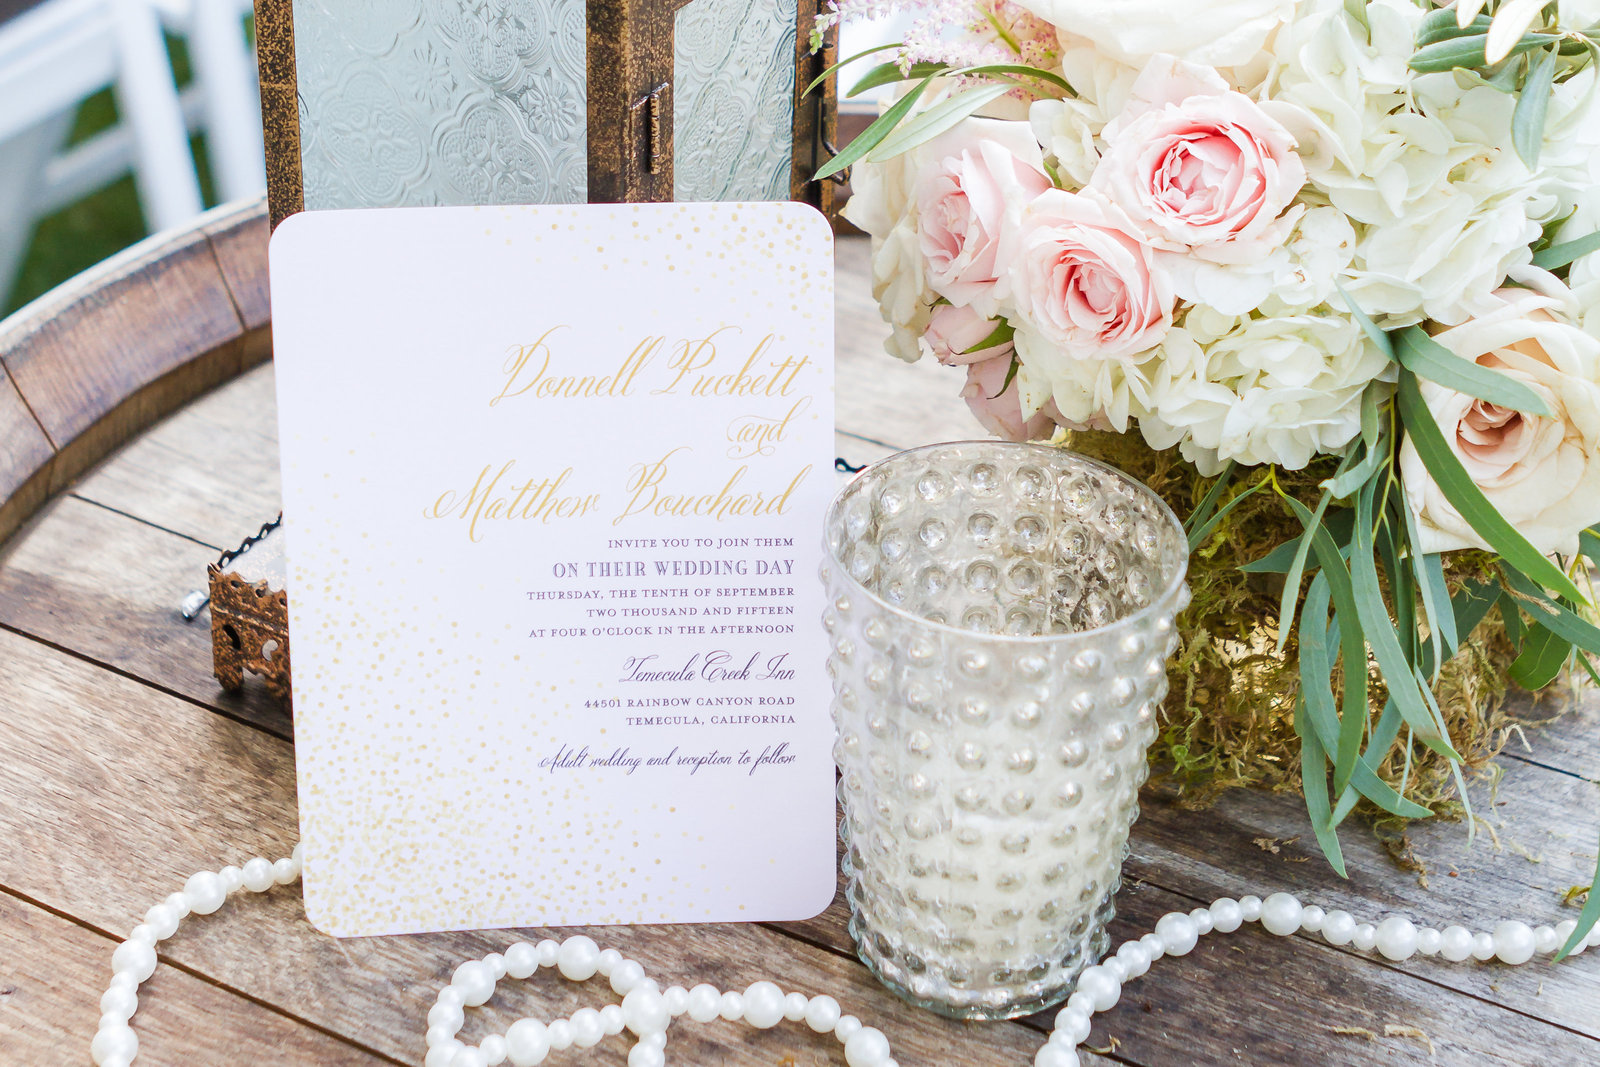 13-Temecula Wedding Pictures-Temecula Creek Inn_